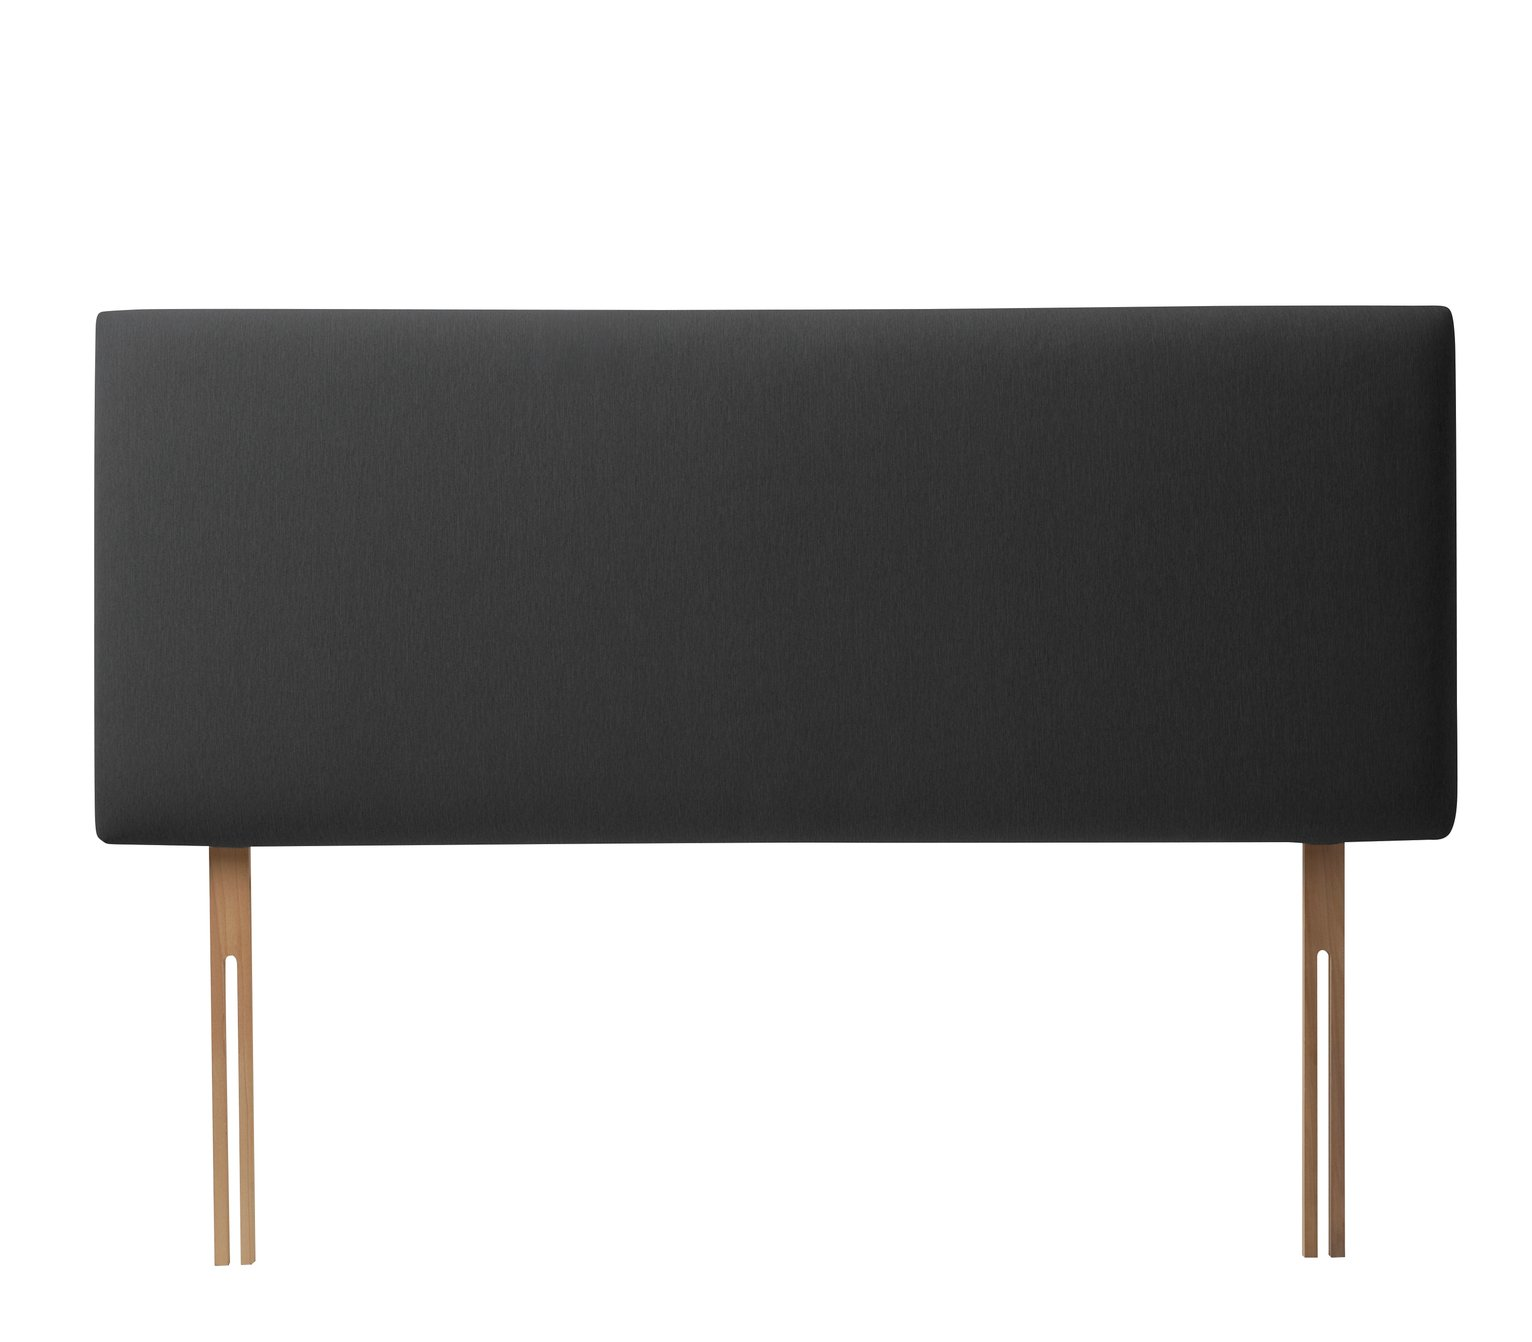 Silentnight Milan Single Headboard - Charcoal